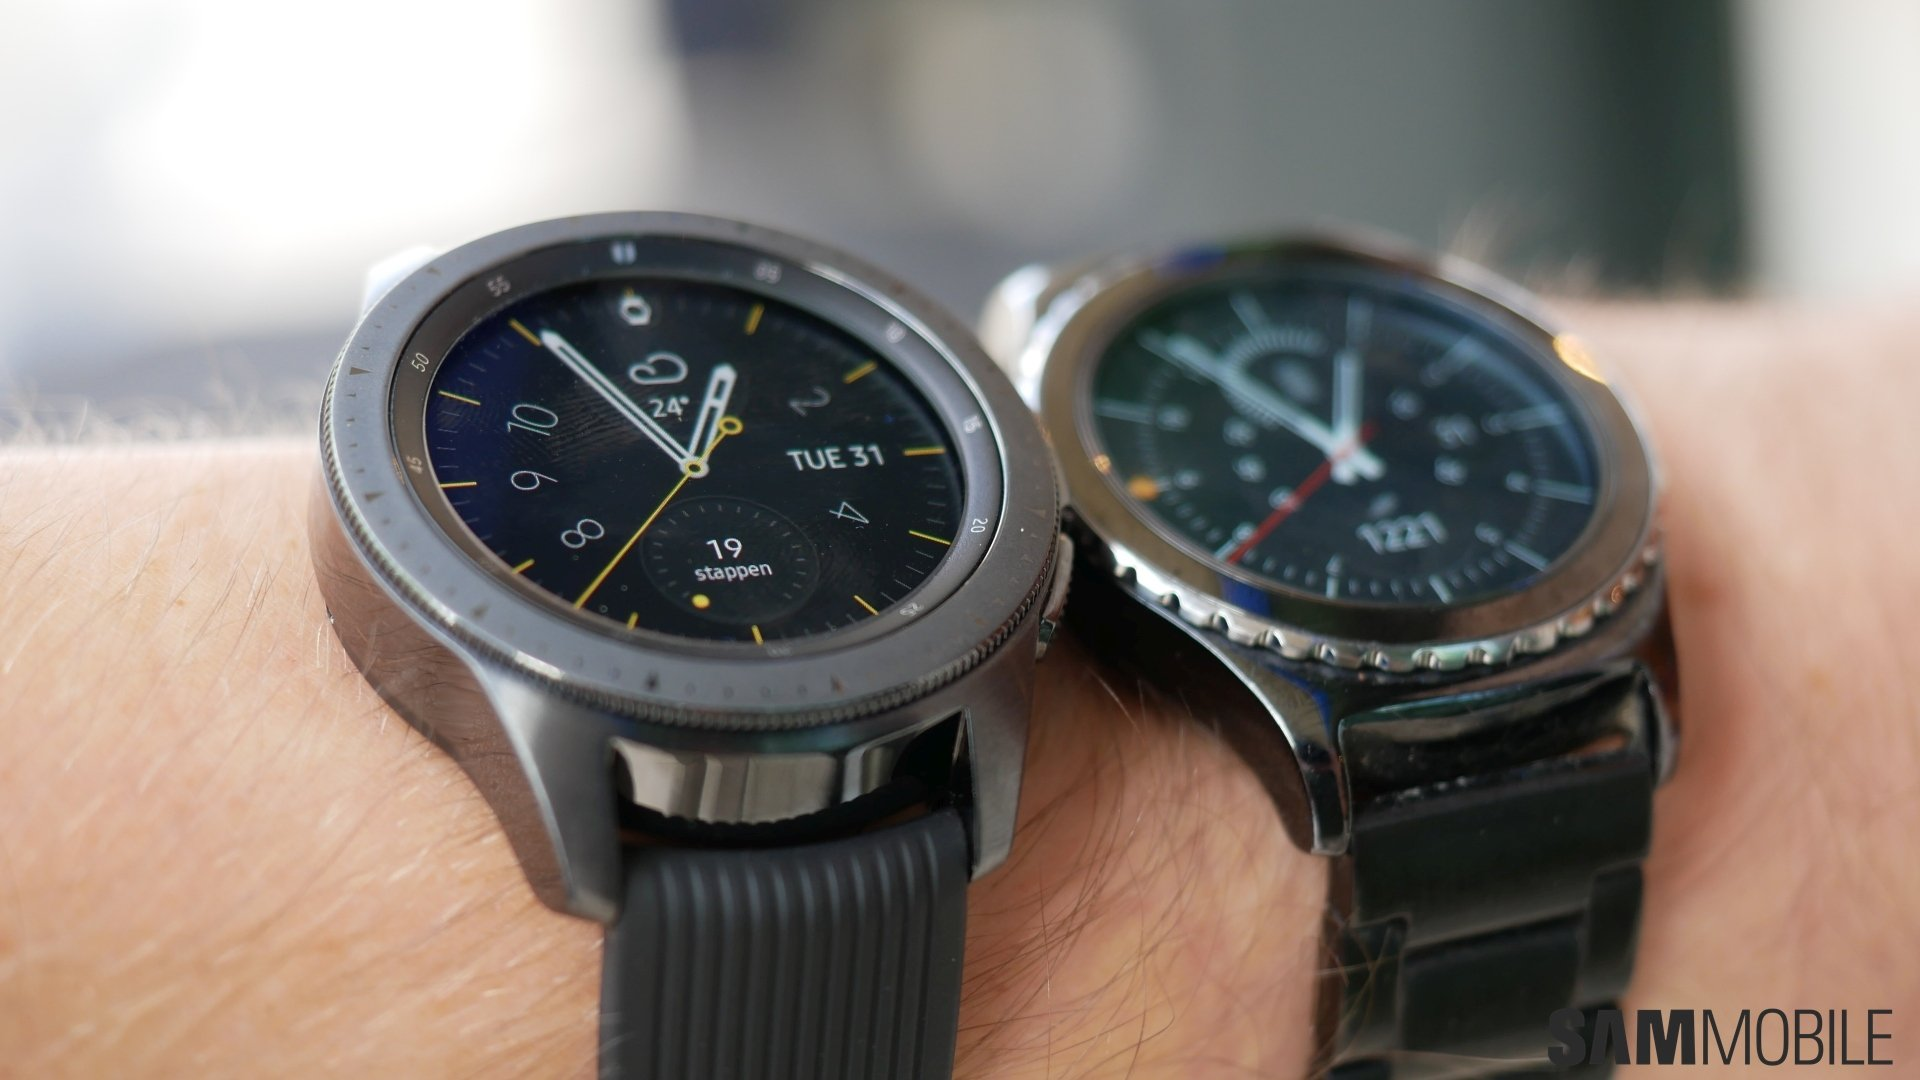 Samsung Galaxy Watch vs Gear S2 in pictures